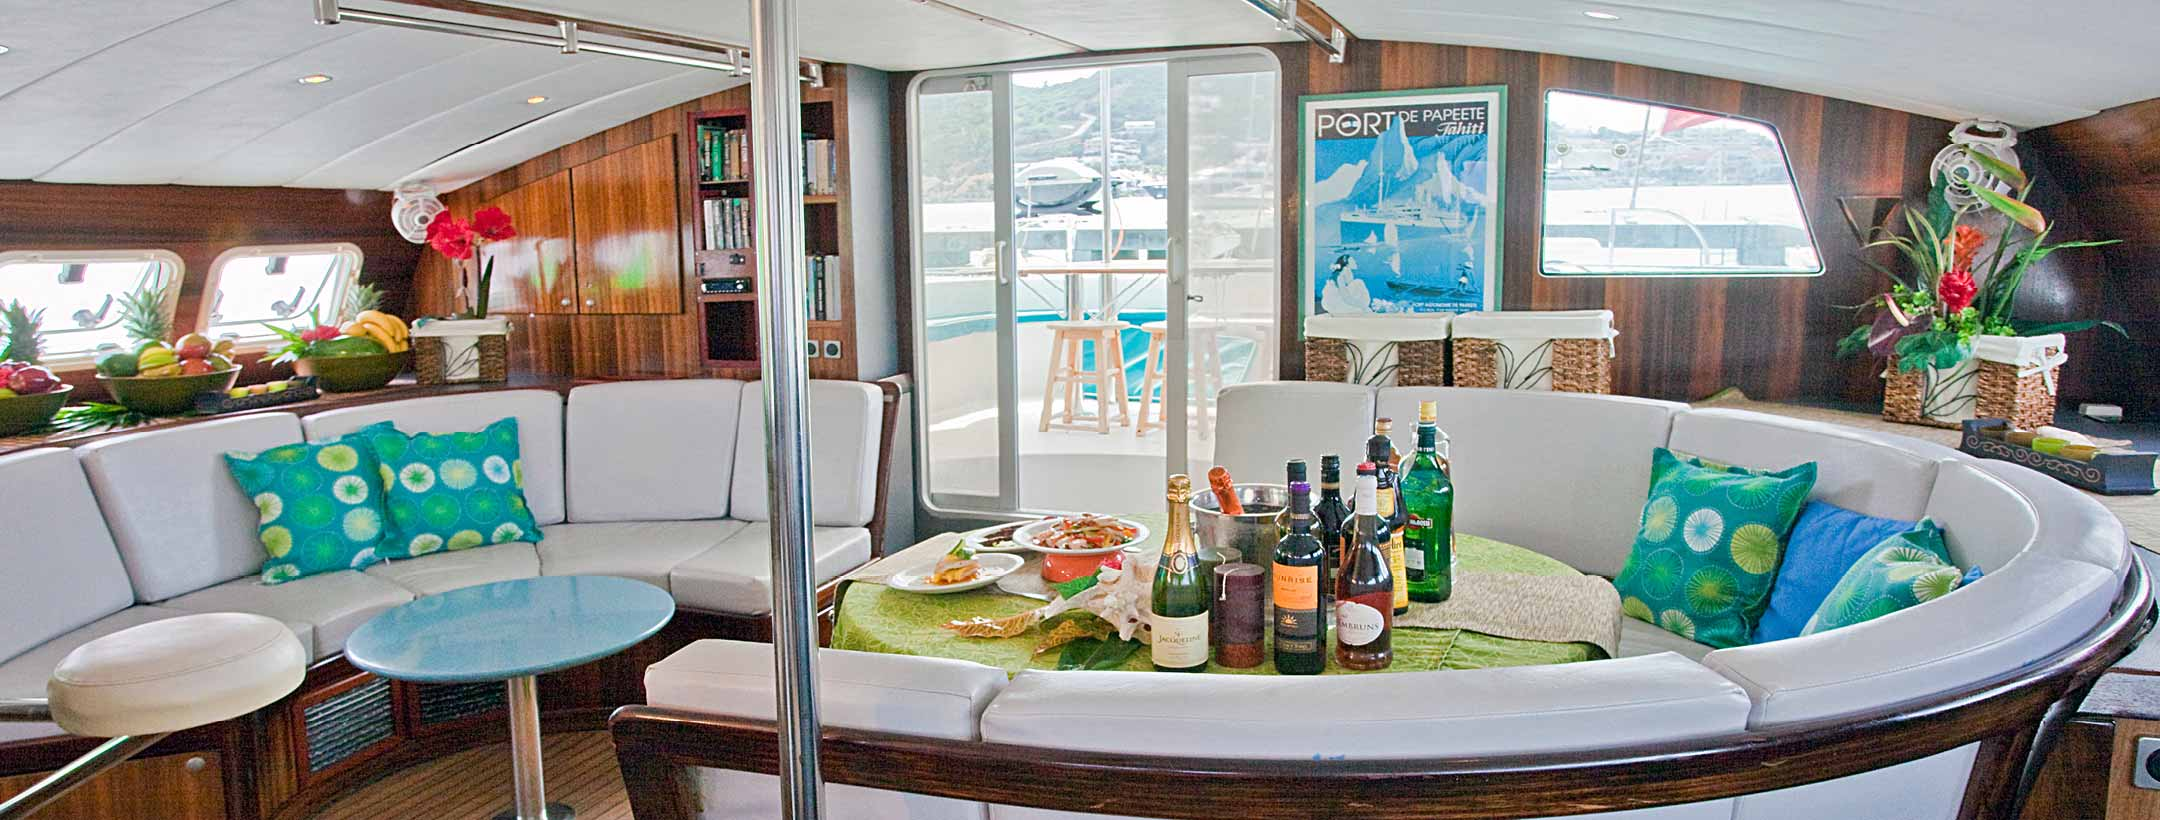 TradeWinds Marquises 56 Cruising Class Yacht dining area